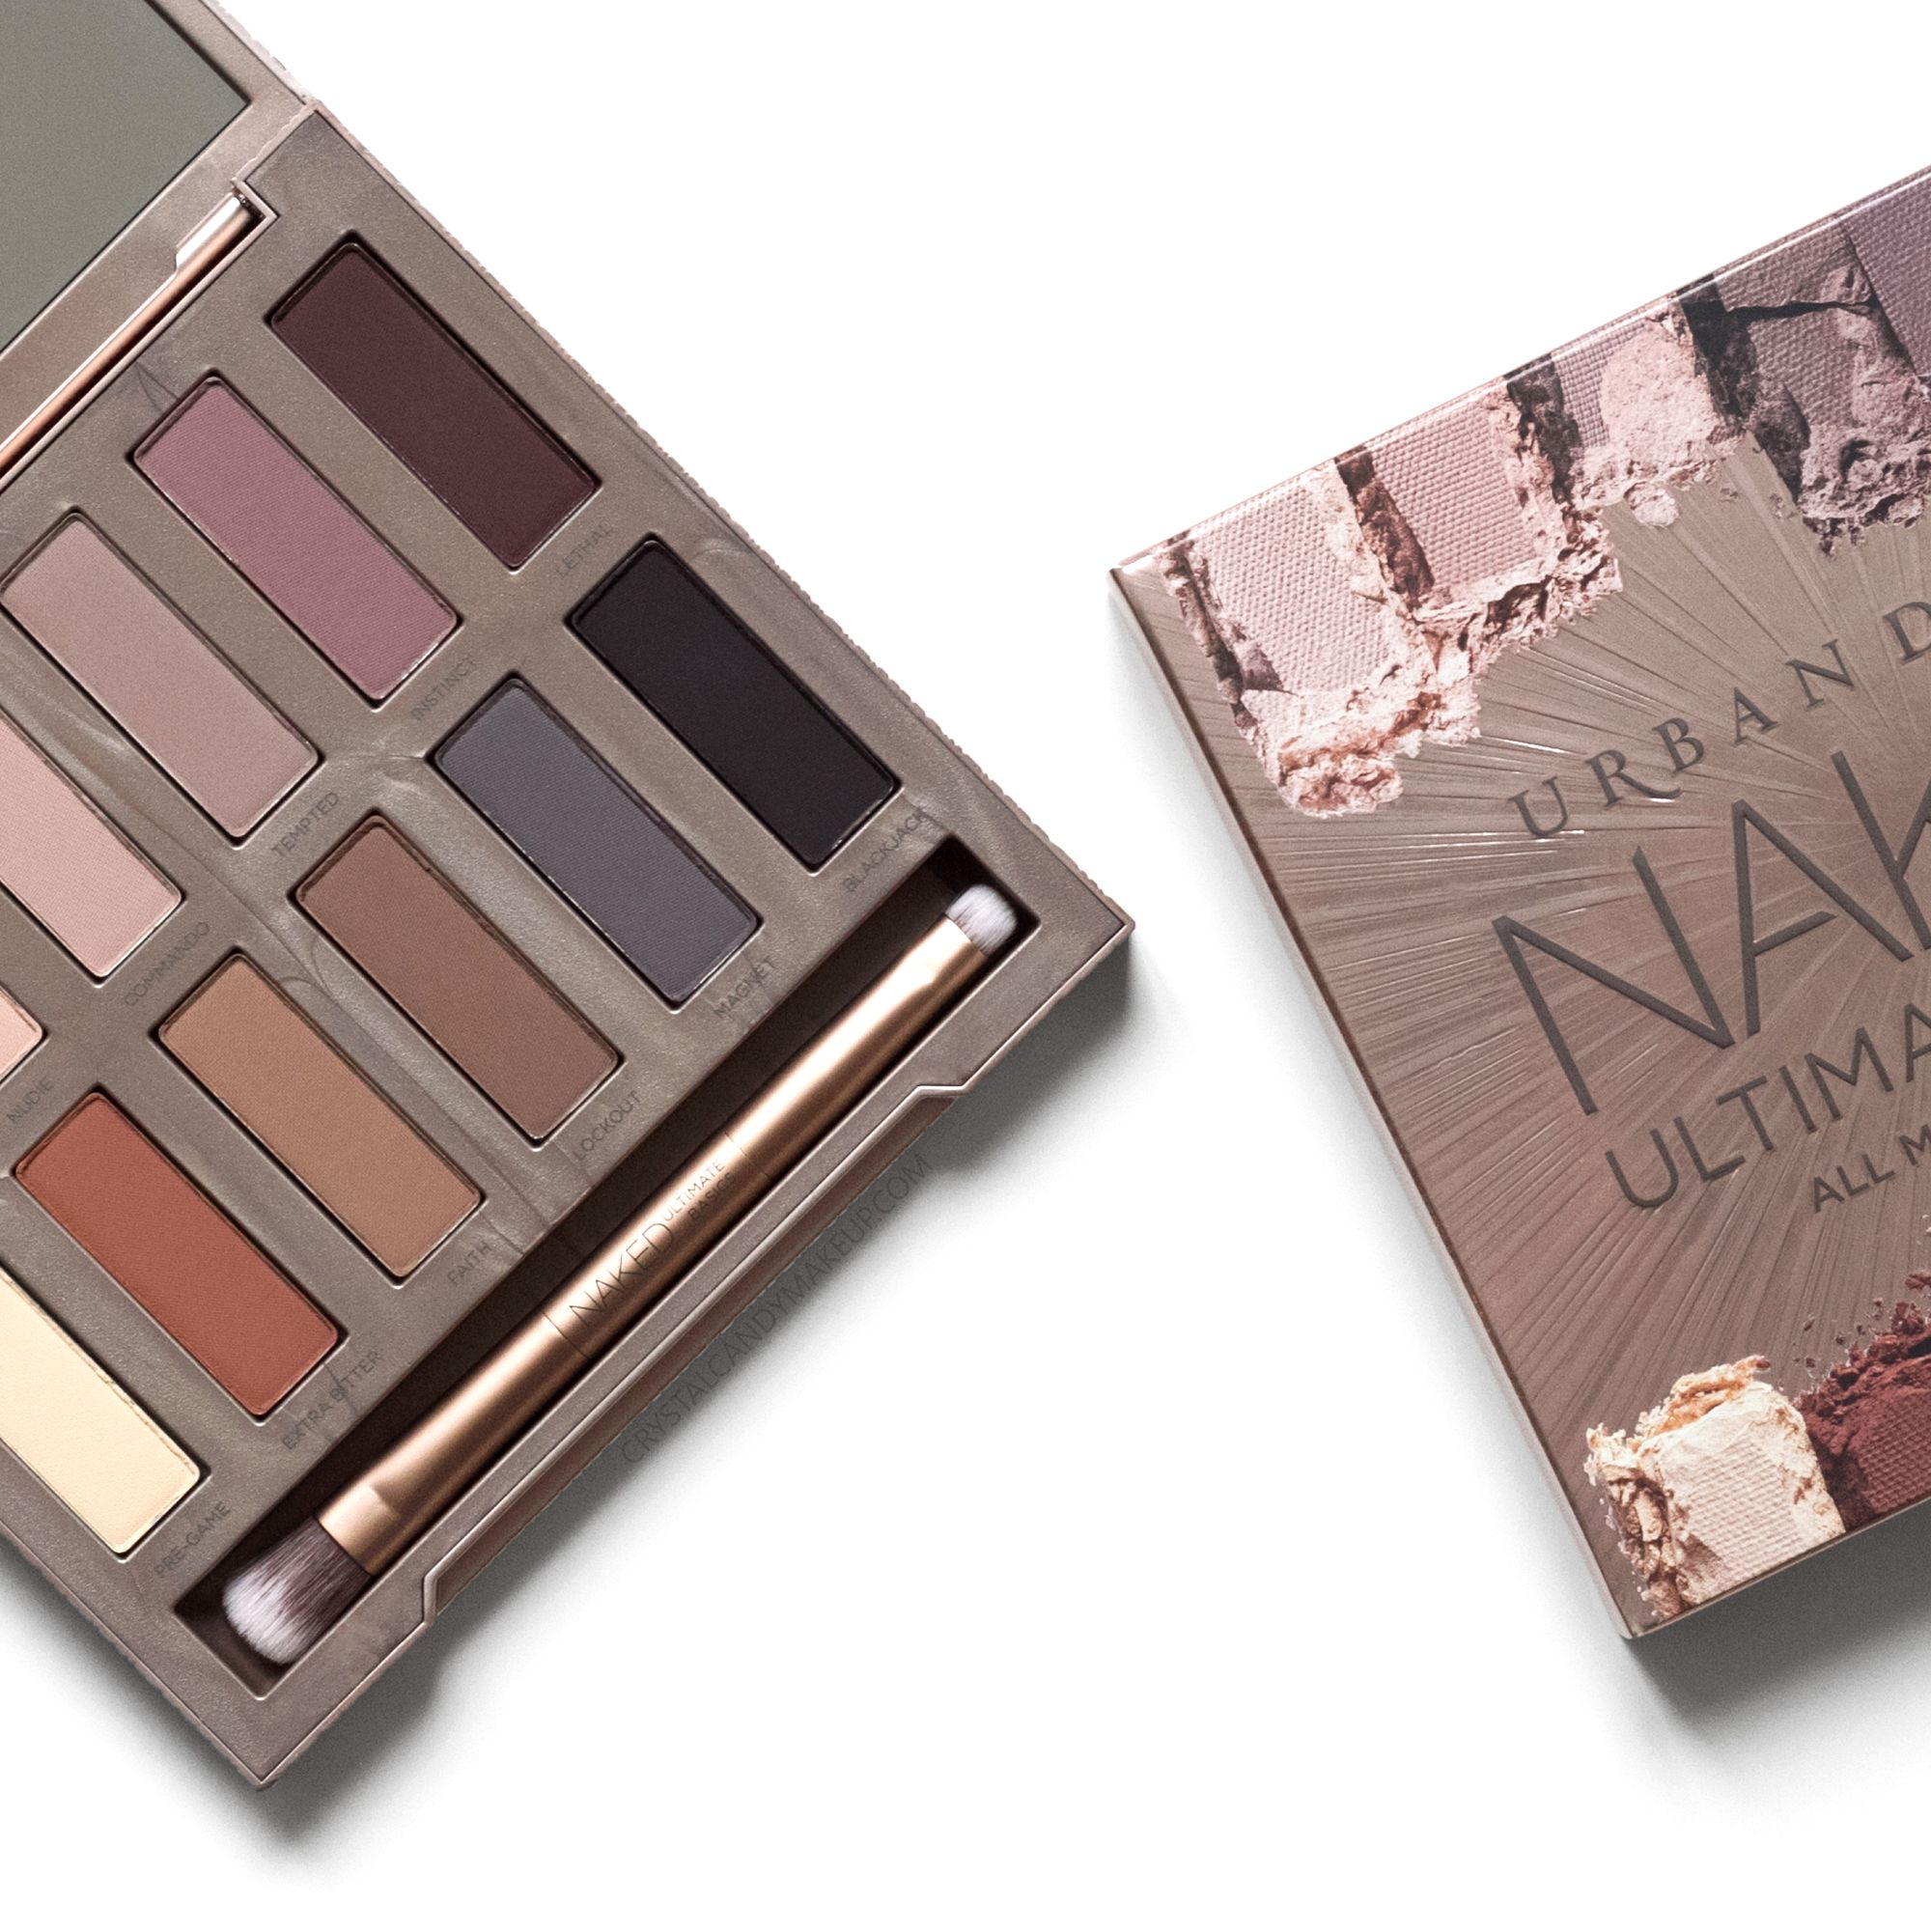 Urban Decay Naked Ultimate Basics Palette, Review And -3621